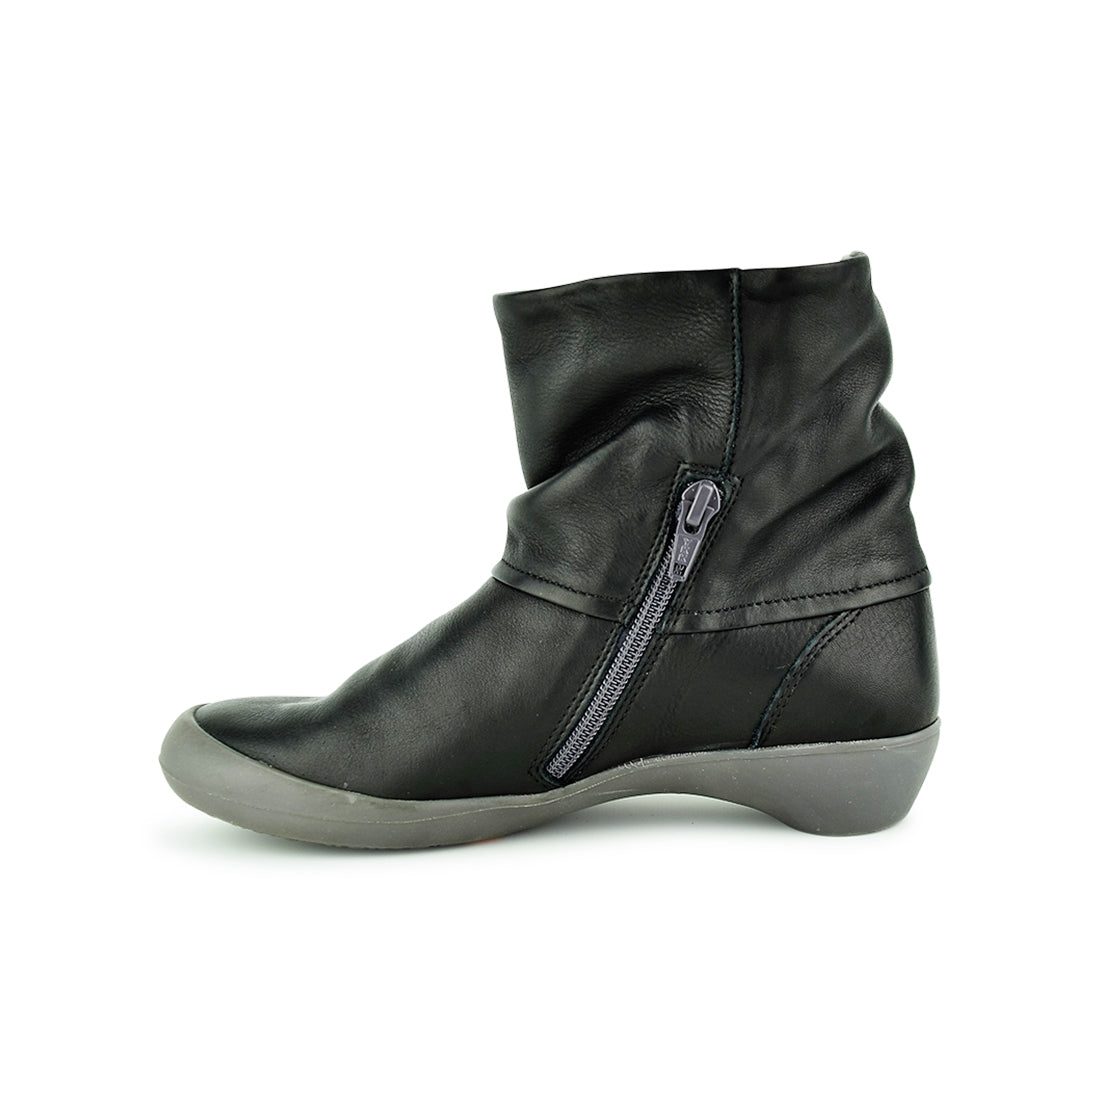 JOSEVA - Softinos Ankle Boots Black